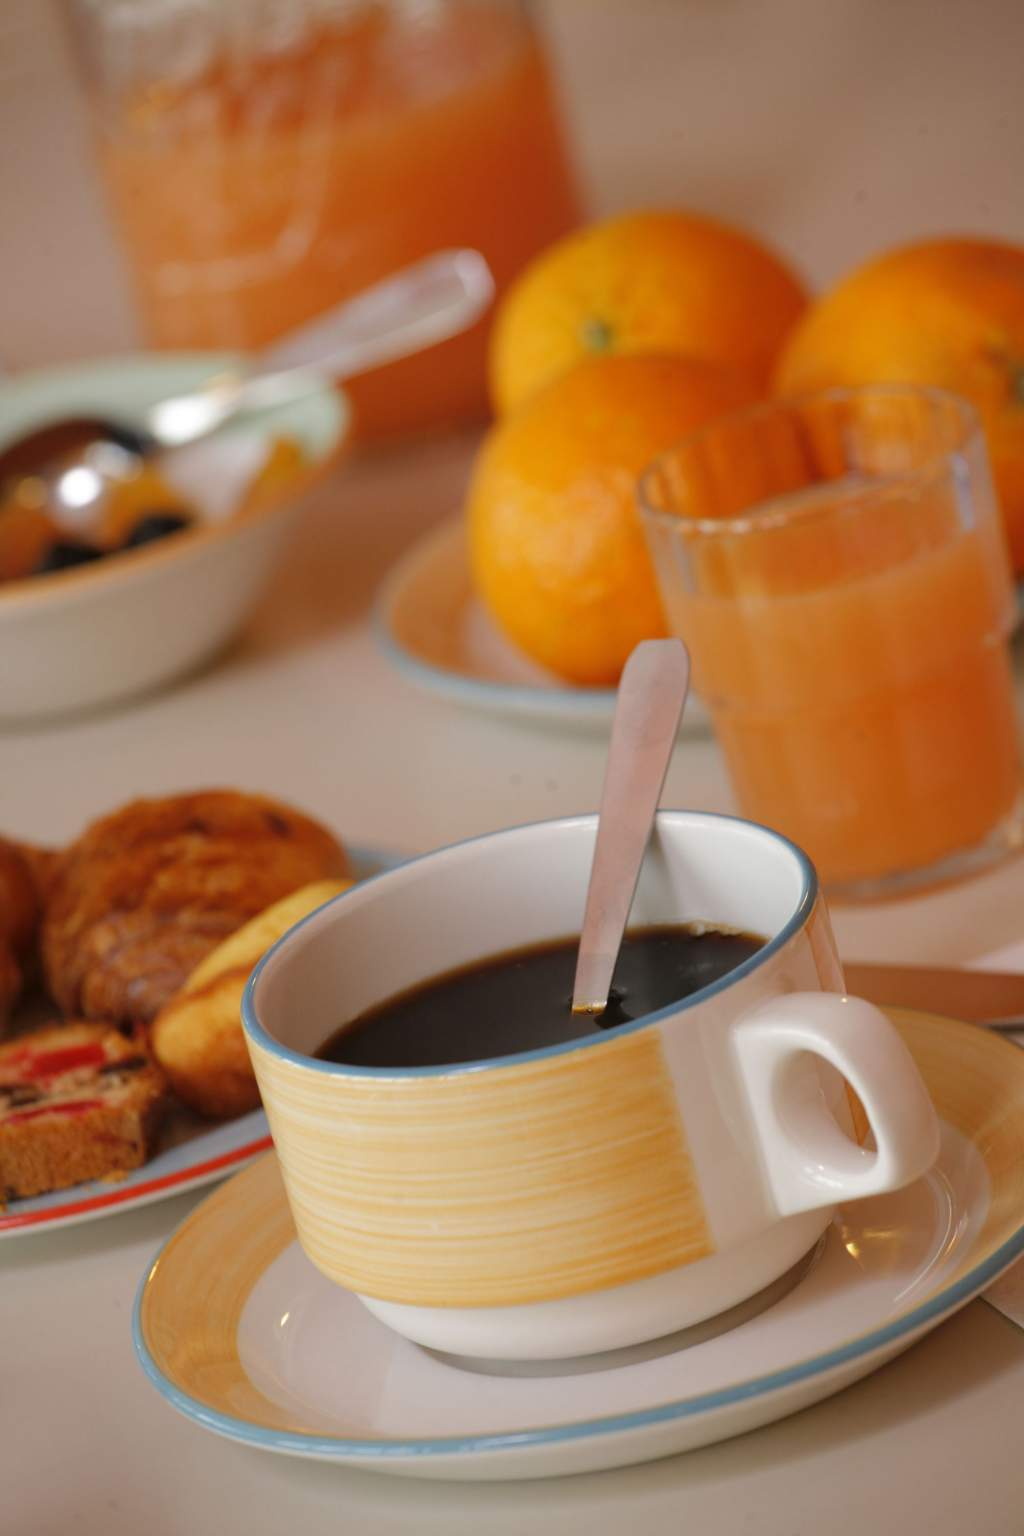 coffee, fruit juice, breakfaast